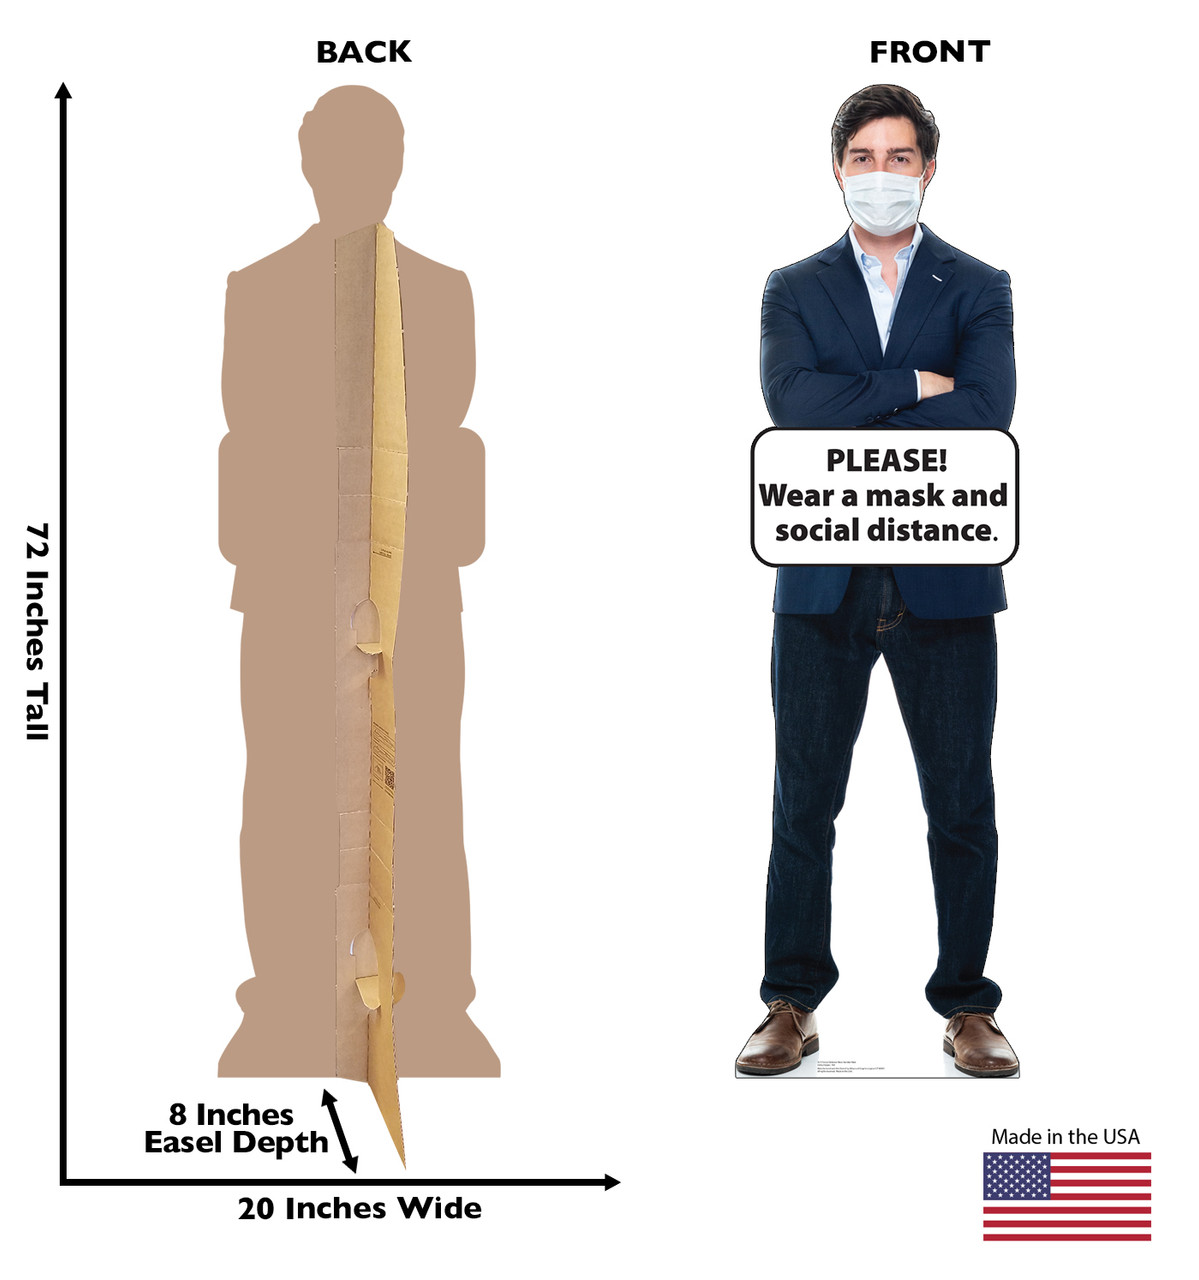 Life-size cardboard standee of Social Distance Mask Standee Male with back and front dimensions.